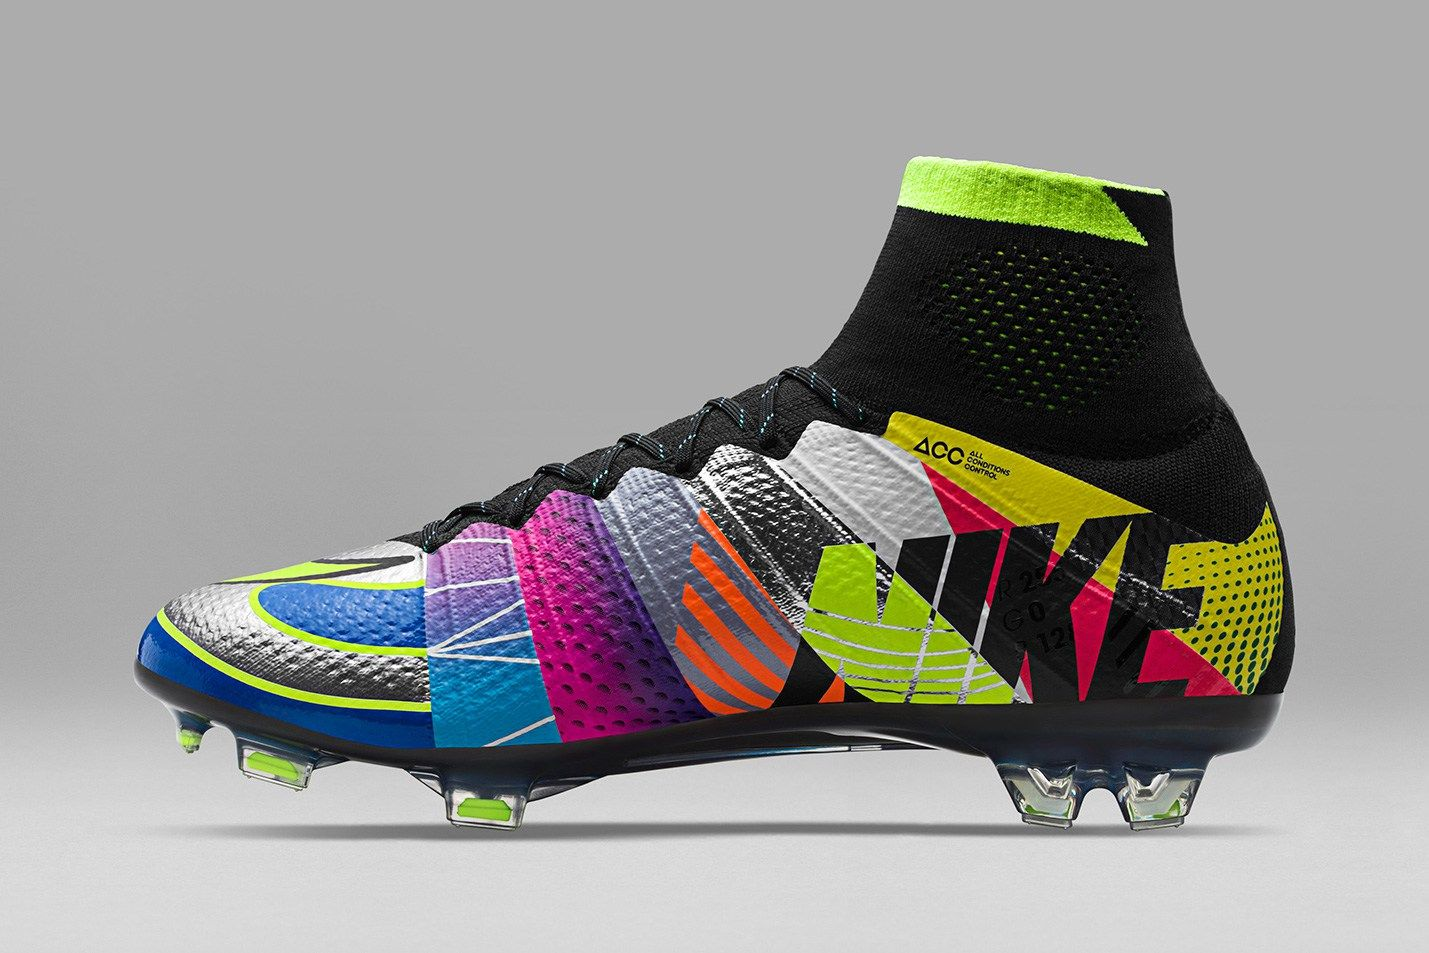 Nike Mercurial Superfly Iv What The Fussballschuhe Coole